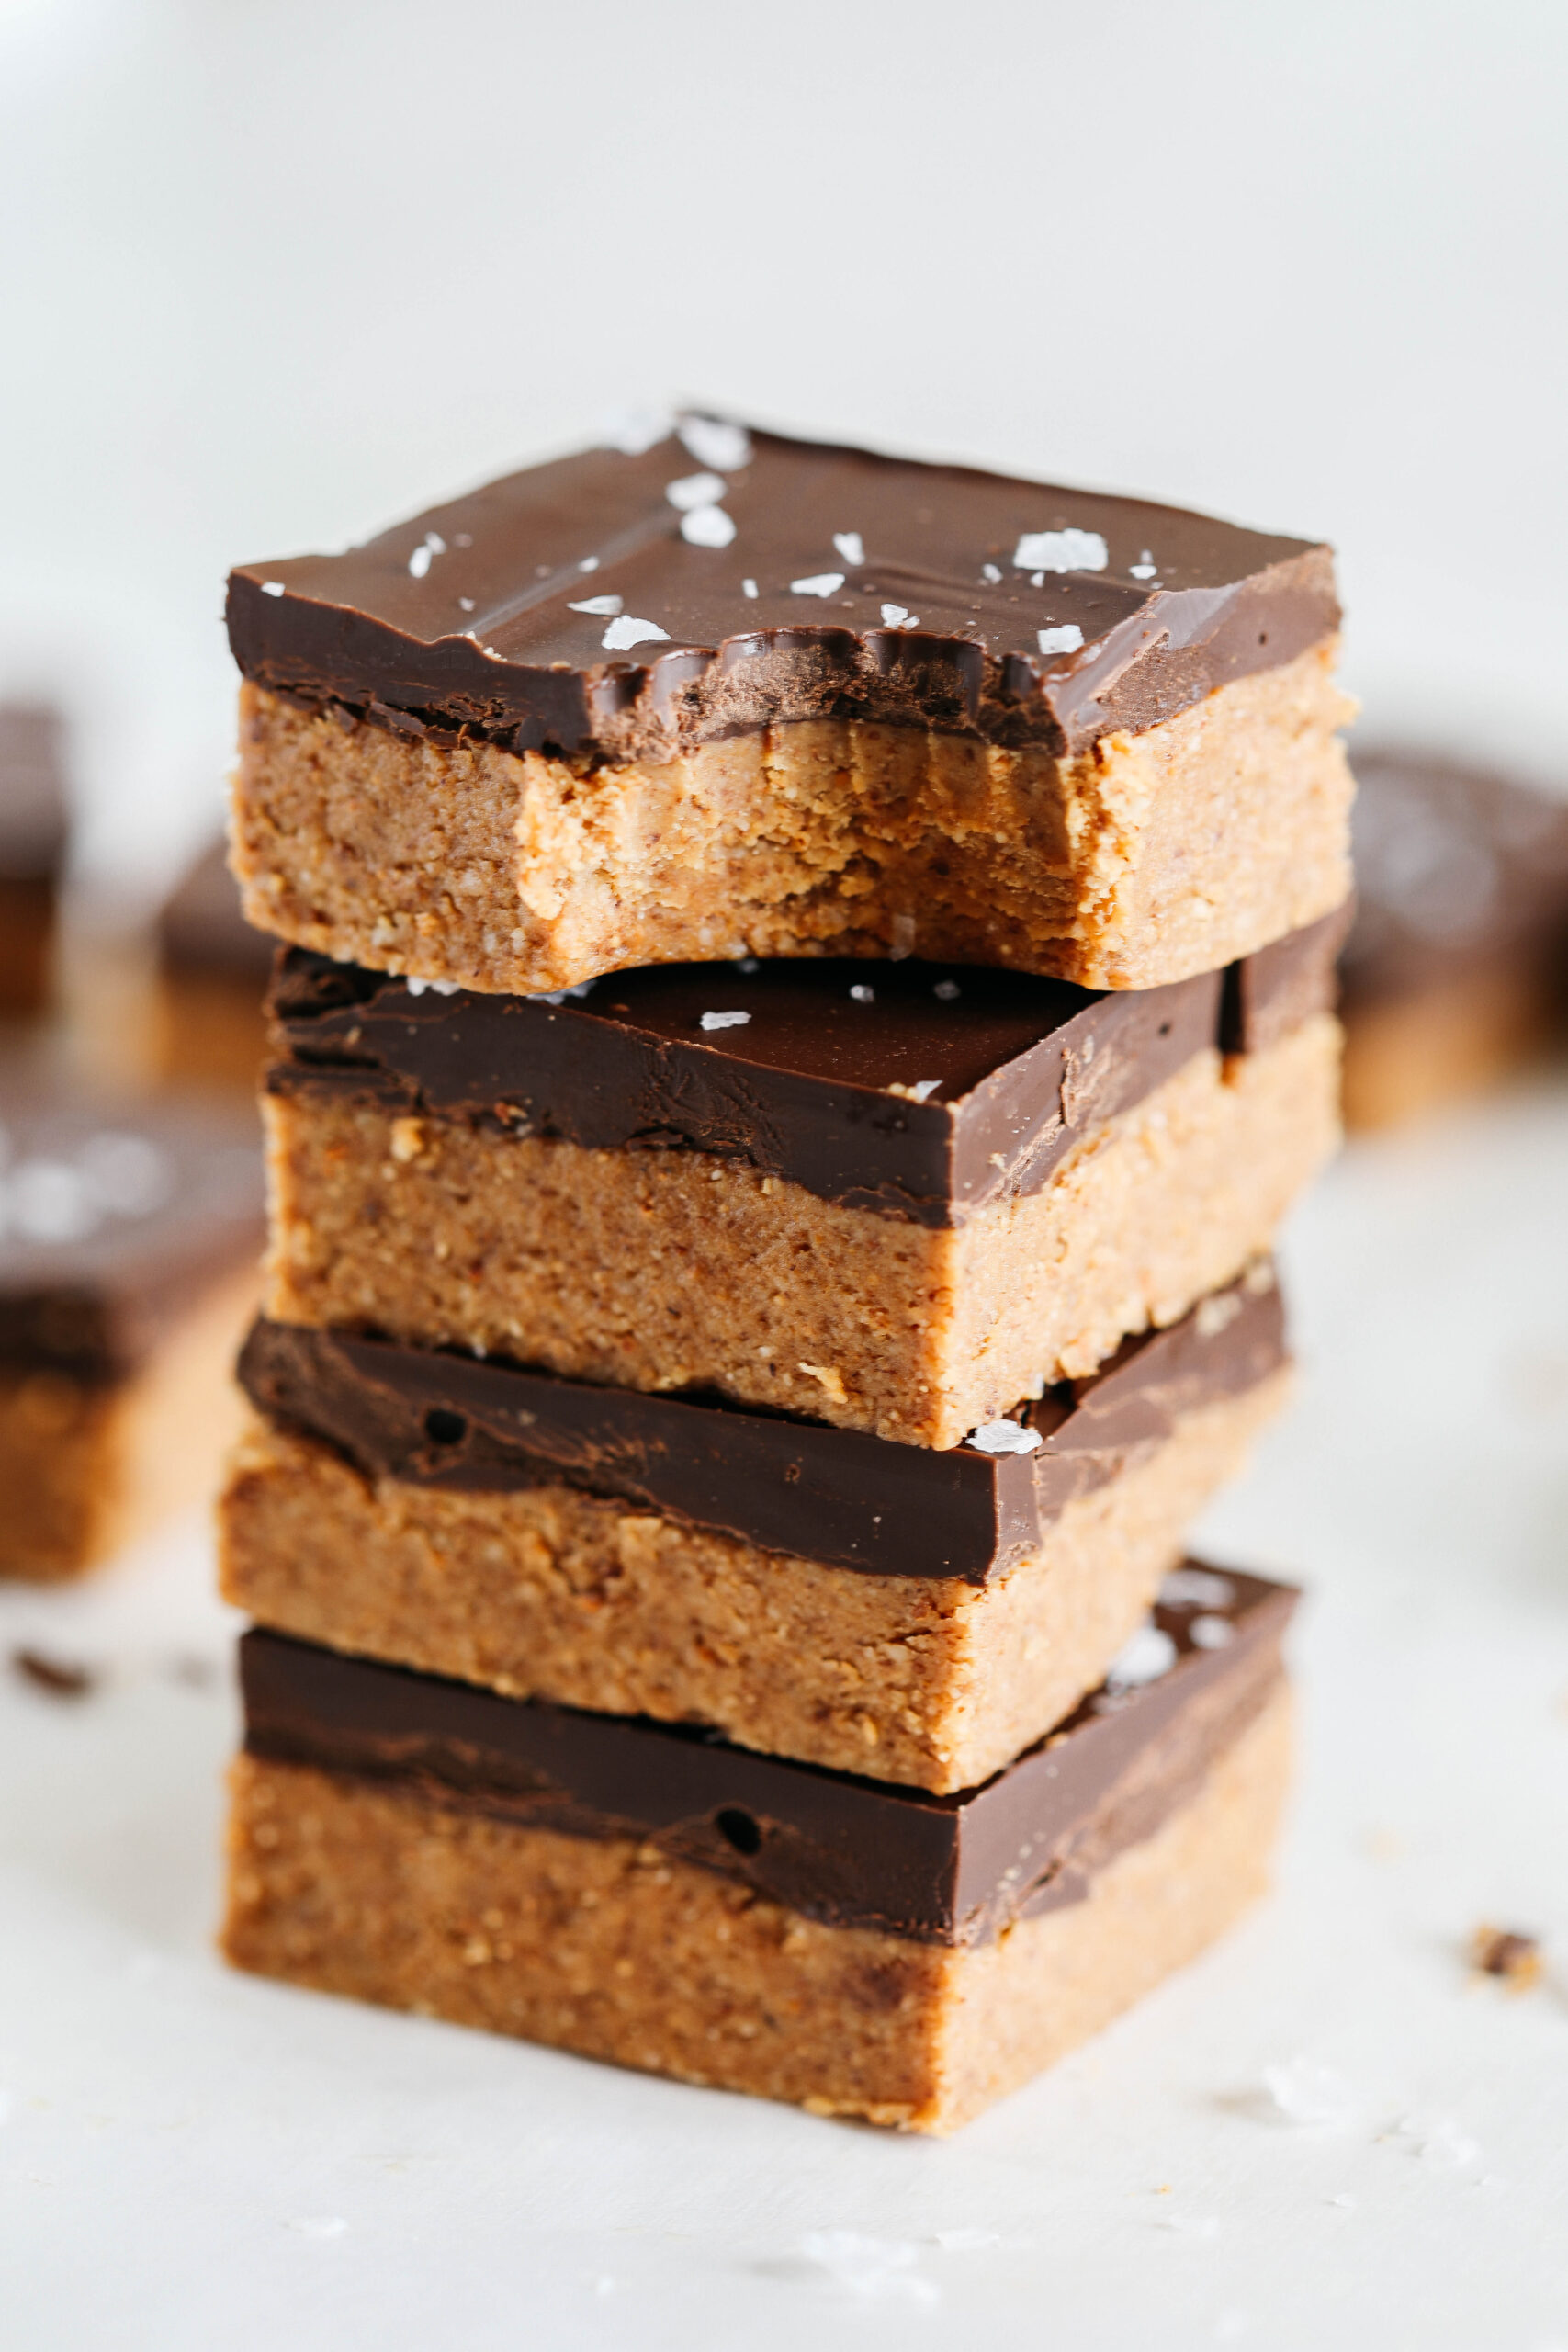 These Dark Chocolate Almond Butter Bars are rich, fudgy and make the perfect sweet treat with just a few simple ingredients and zero baking required!